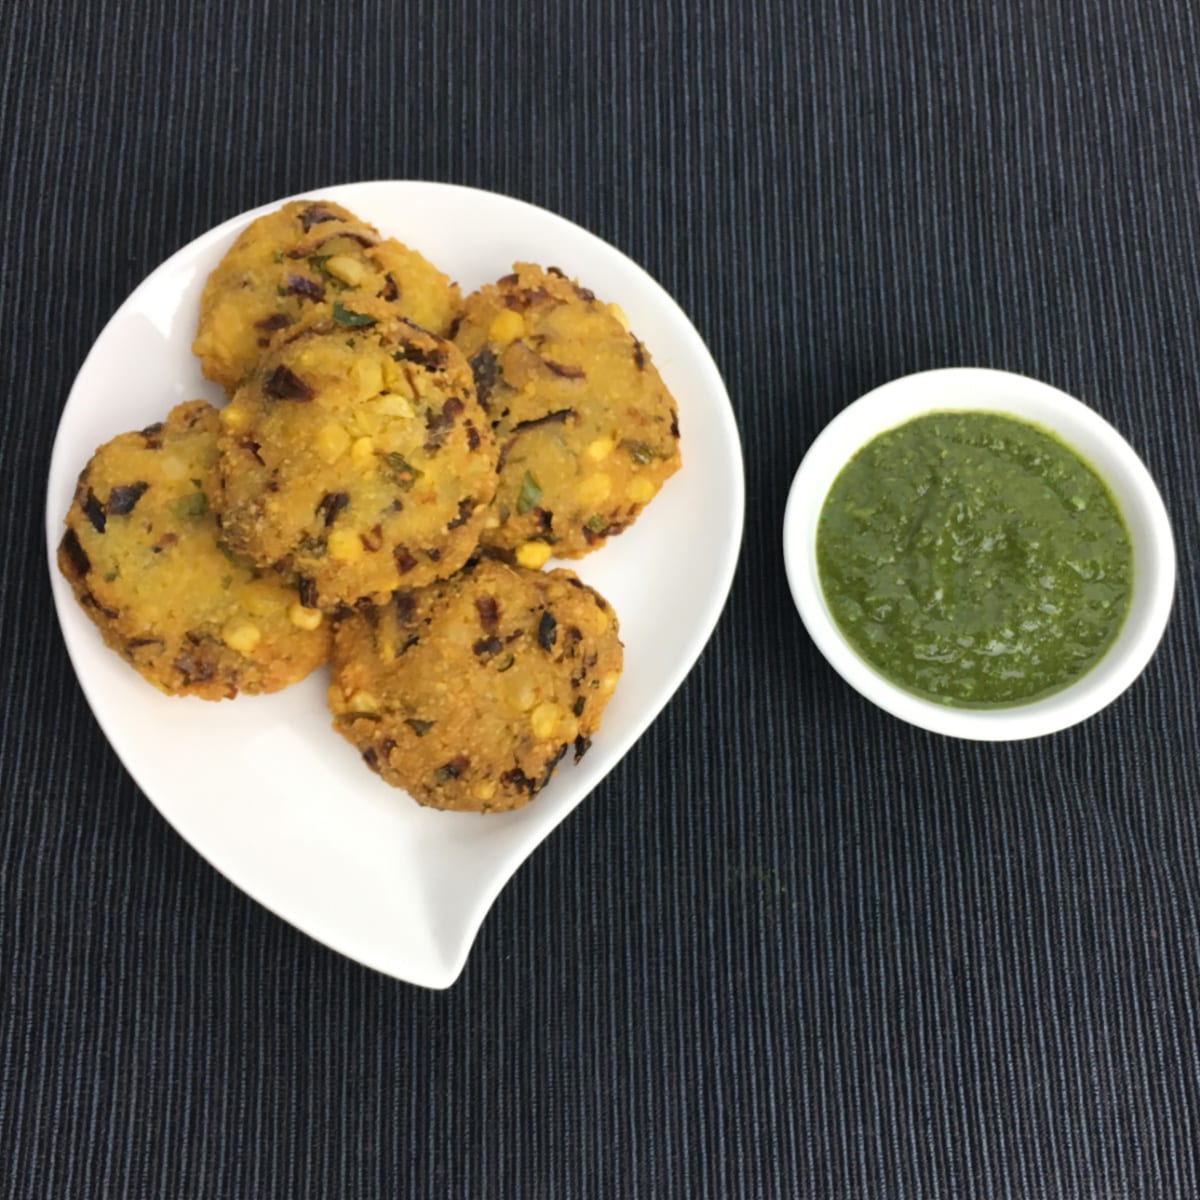 Ambode (Dill and Bengal gram fritters)